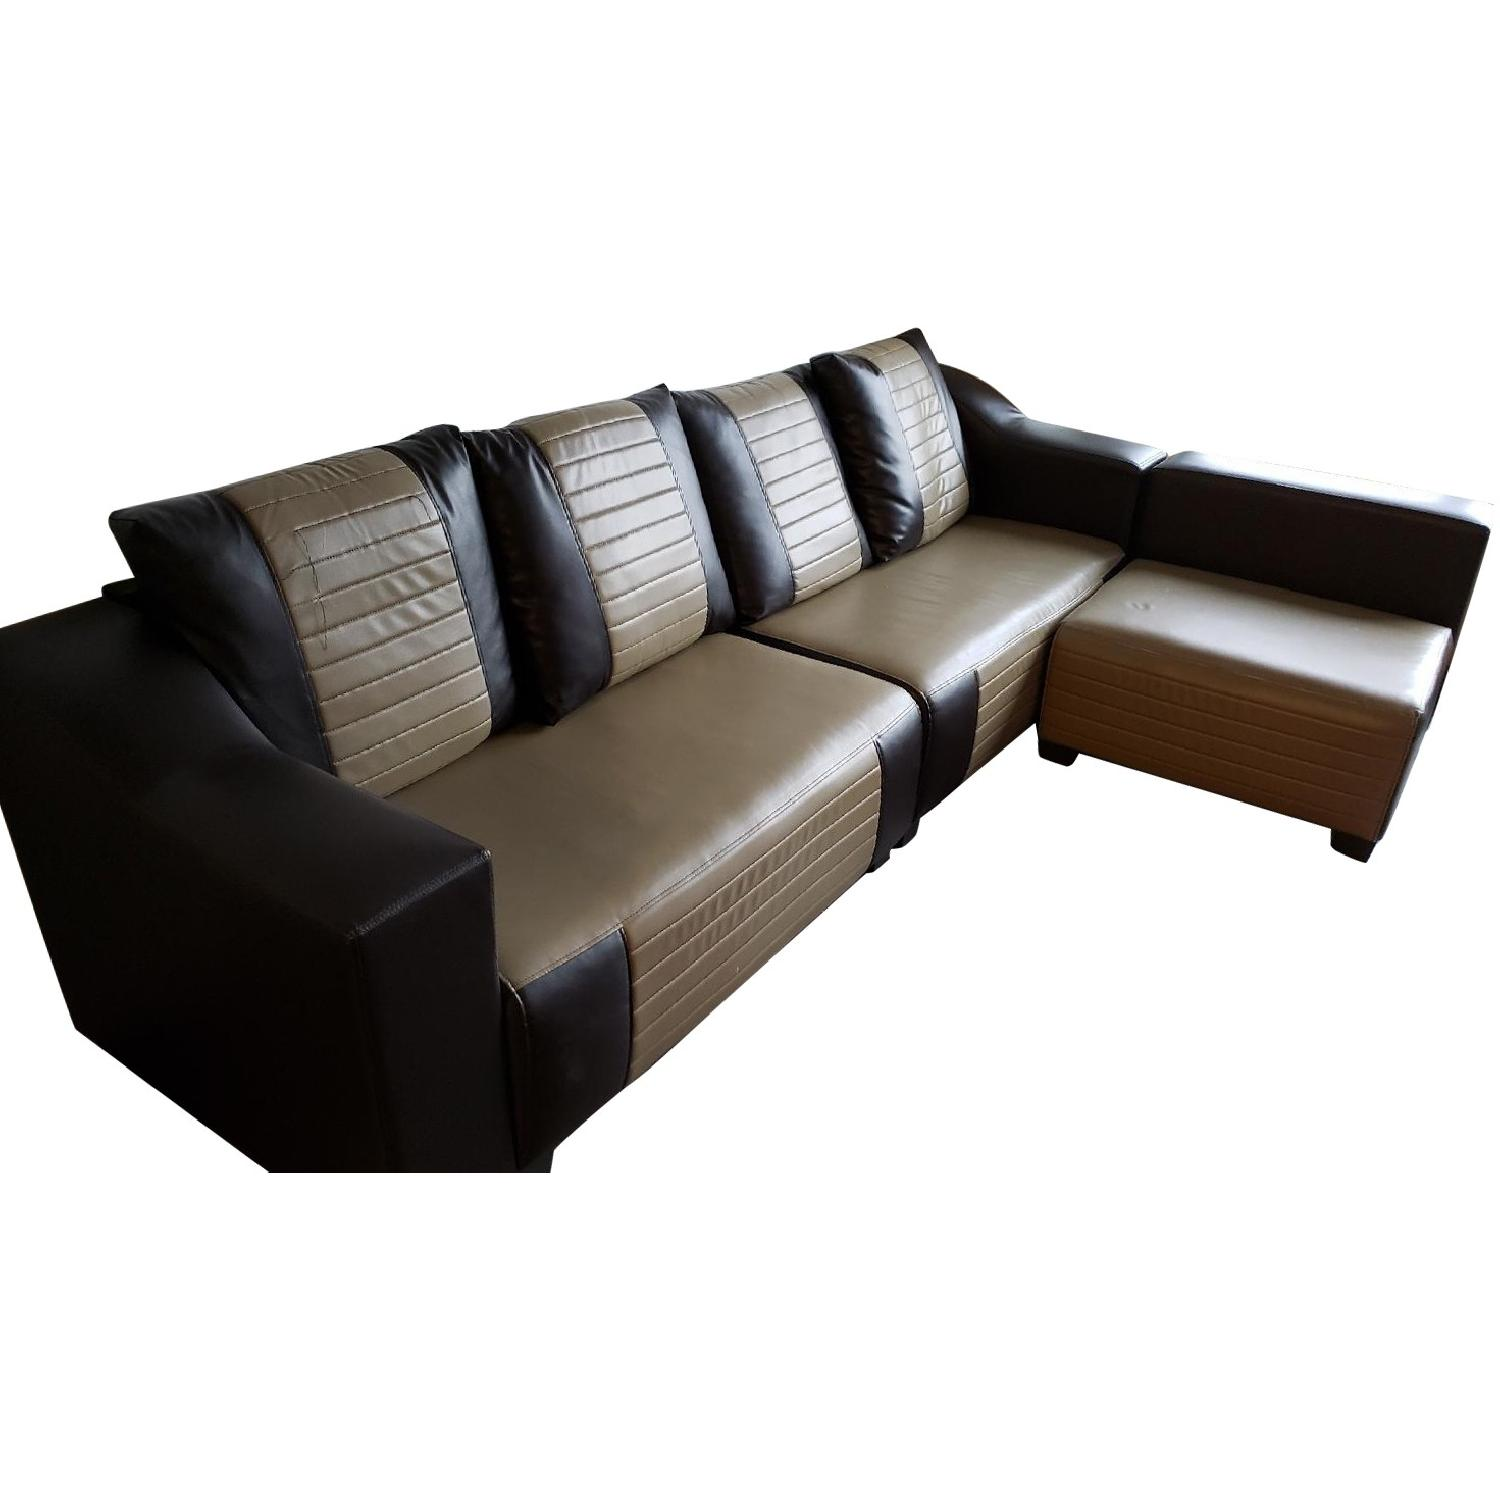 L Shaped Brown Leather Sectional Sofa - AptDeco